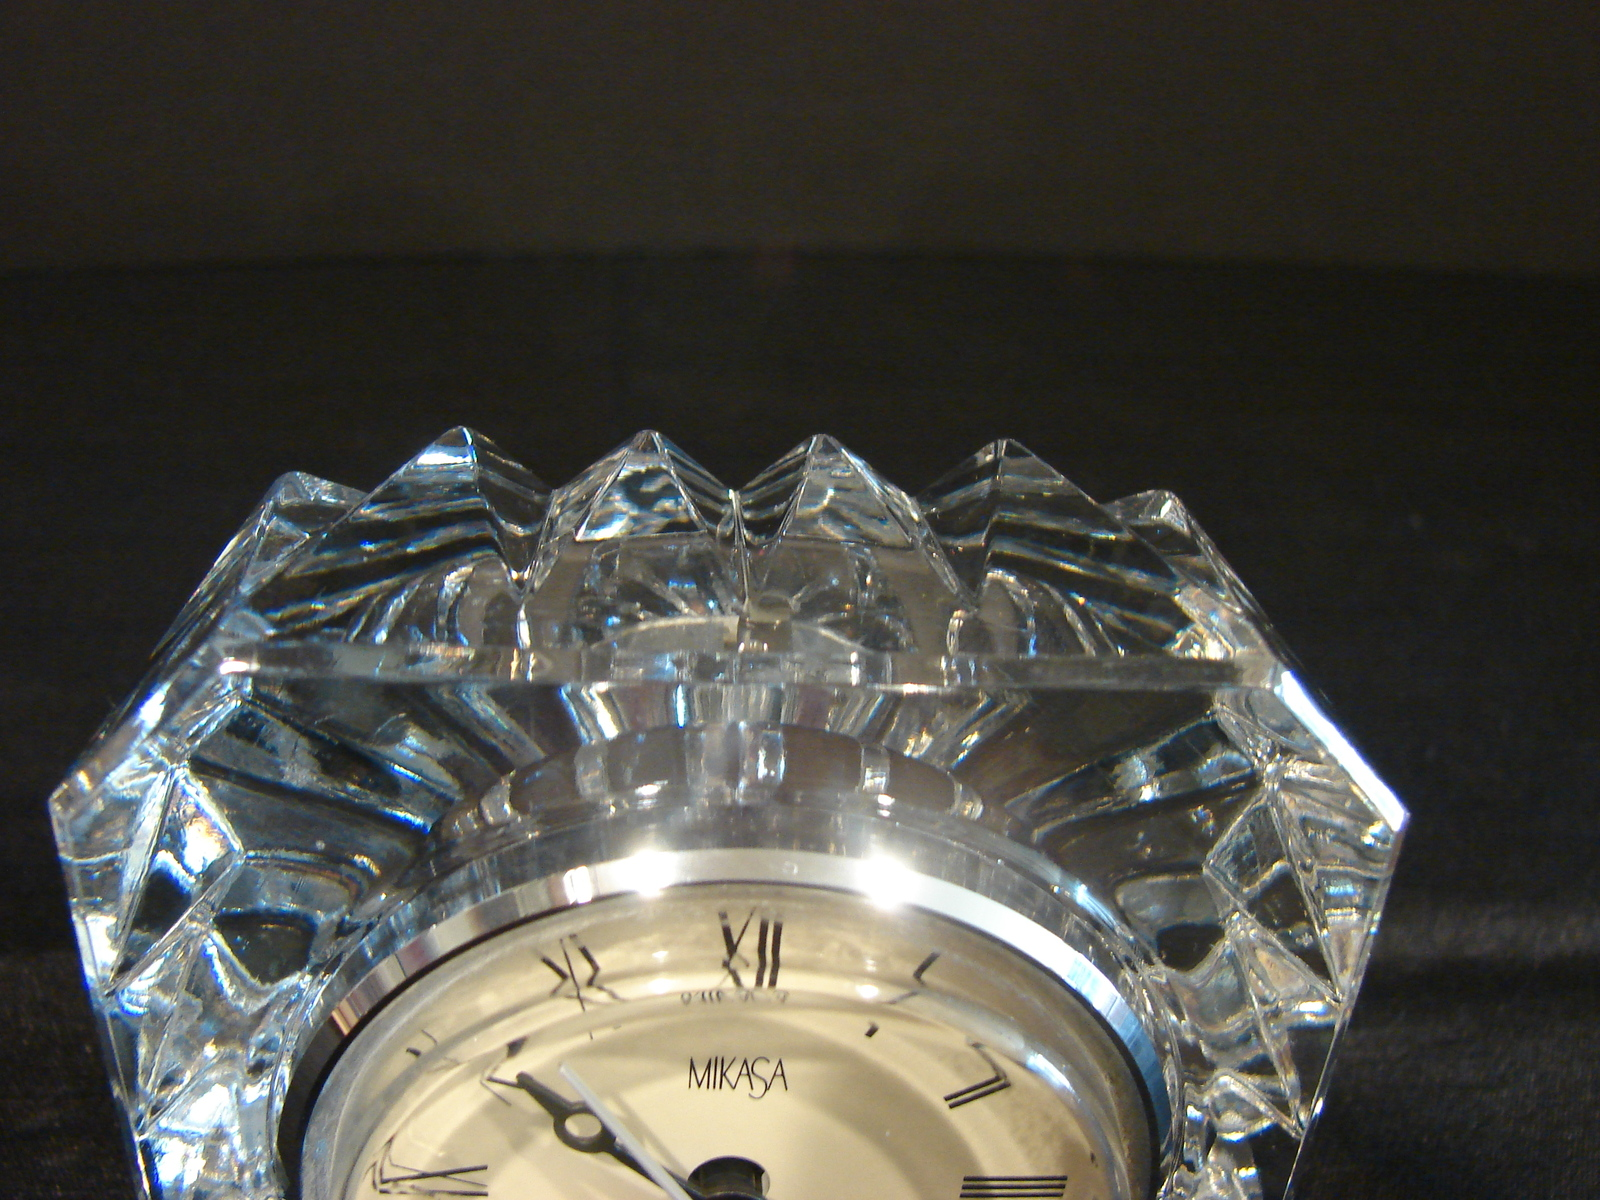 Mikasa Crystal Small Desk Student Clock And Similar Items Dsc06506